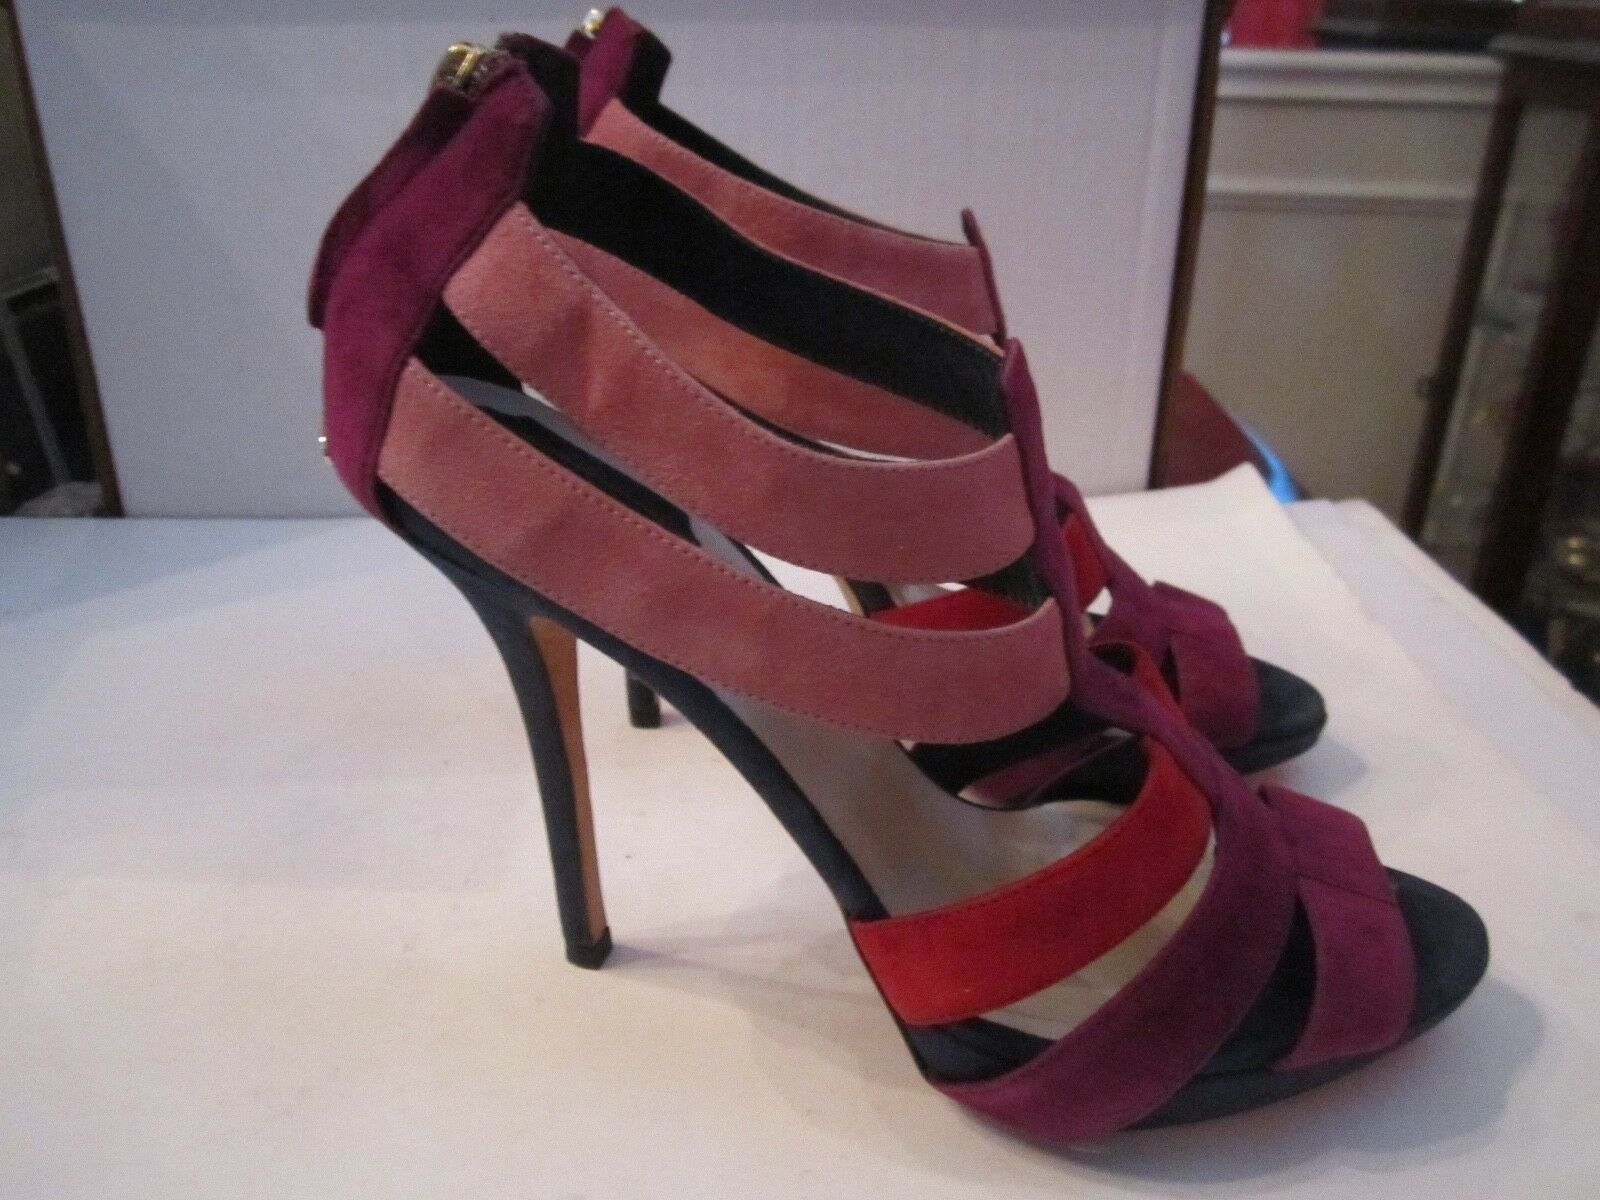 CHRISTIAN DIOR MULTI COLOR SUEDE STILETTO SHOES - SIZE 9 (39)